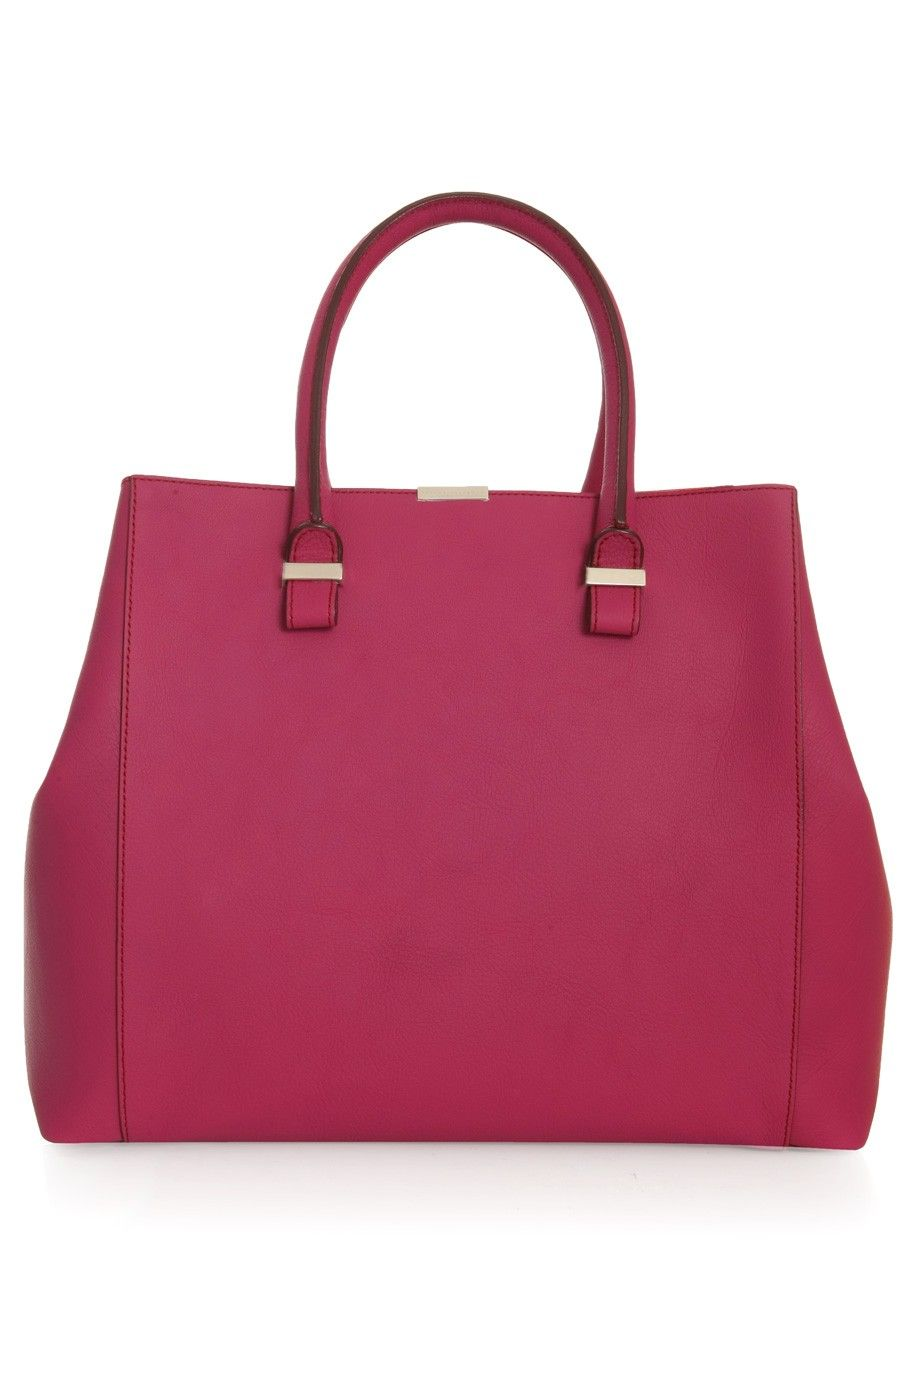 Liberty Tote Bag By VICTORIA BECKHAM BAGS